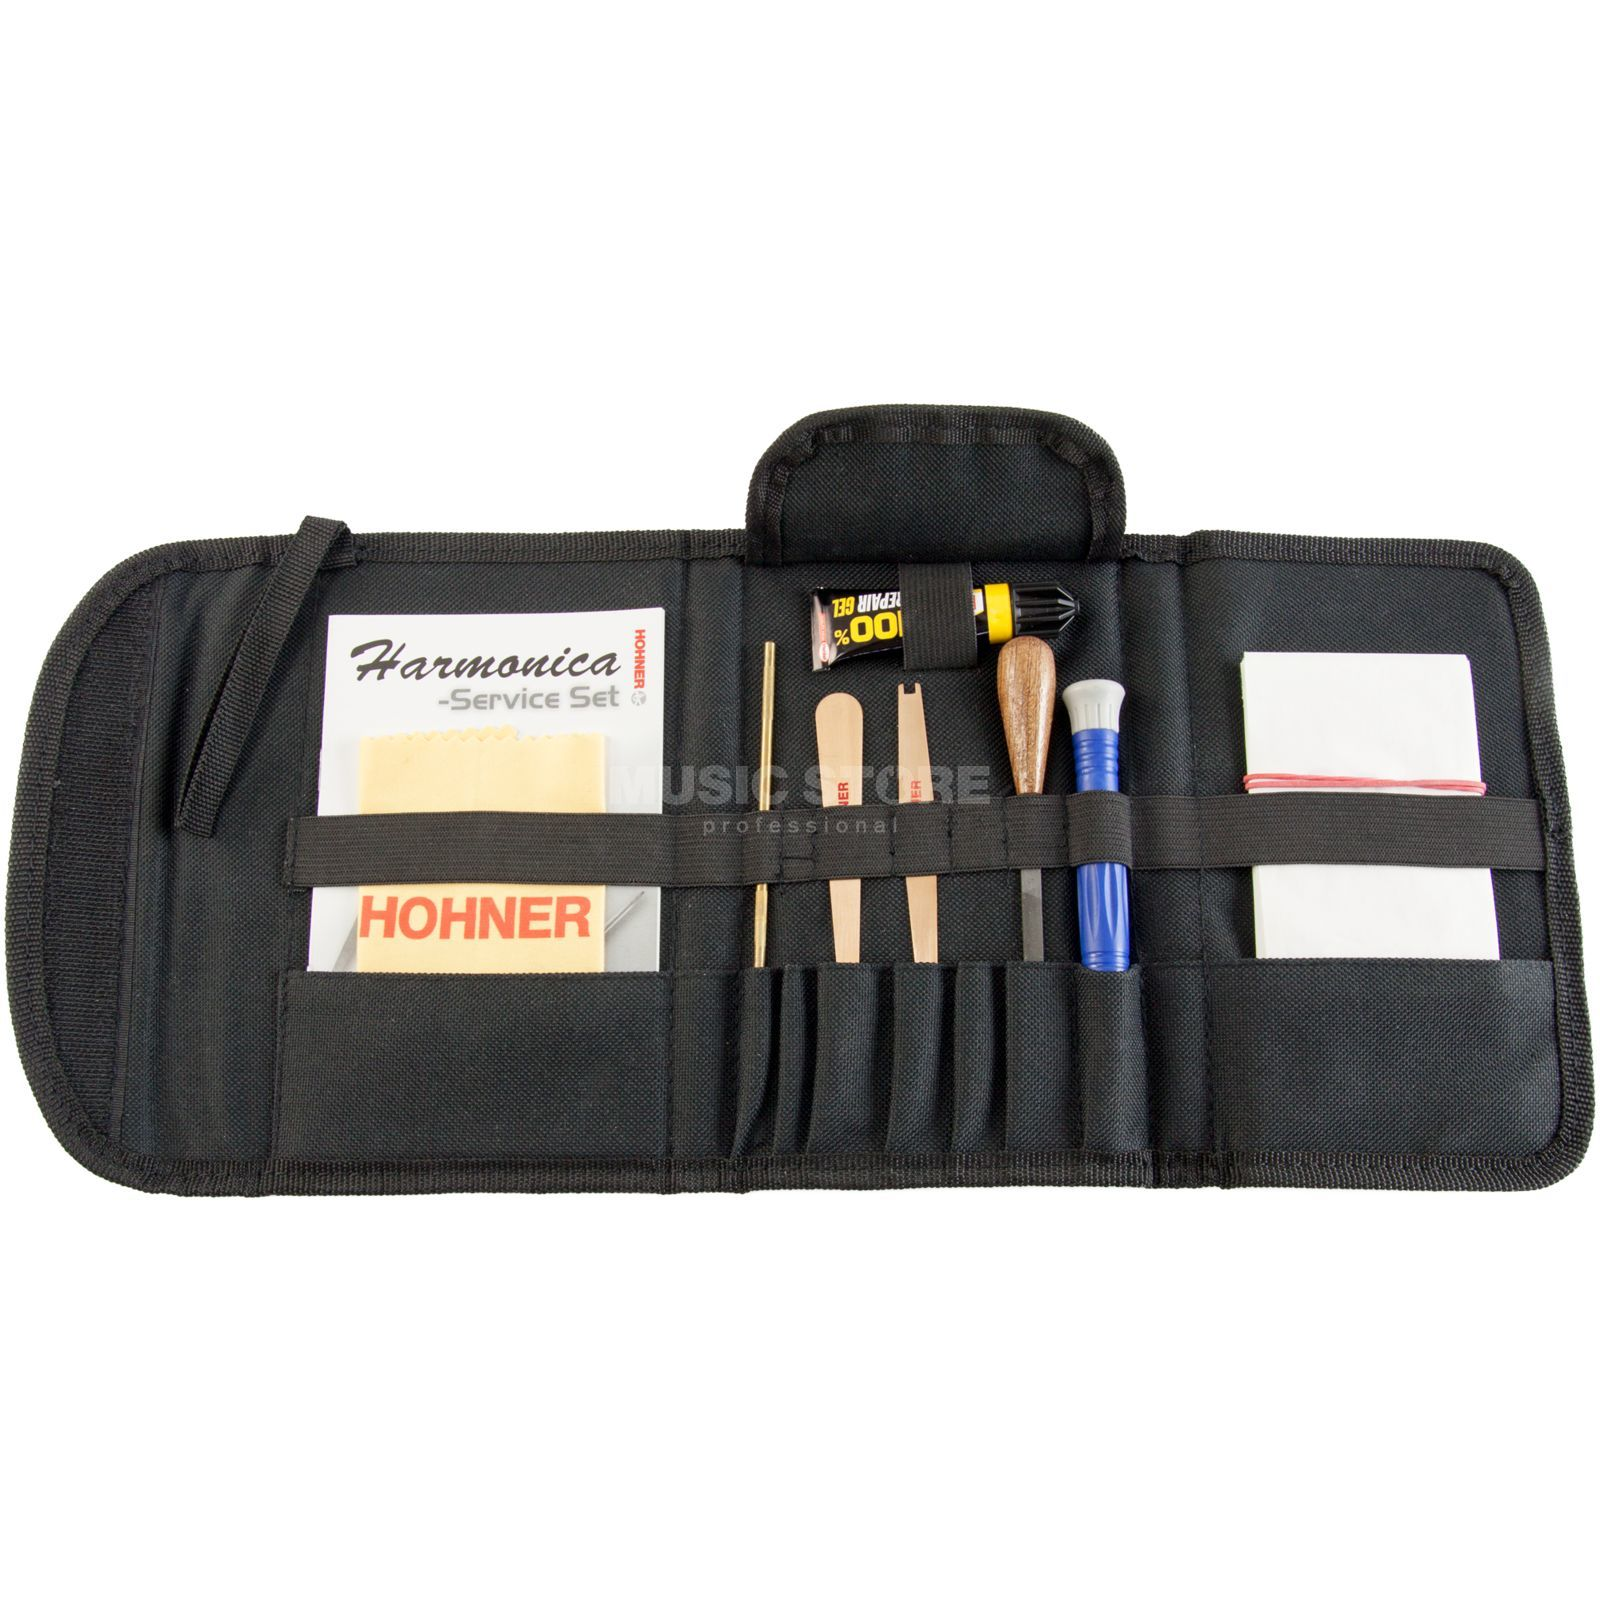 Hohner Service Kit for Harmonica Product Image